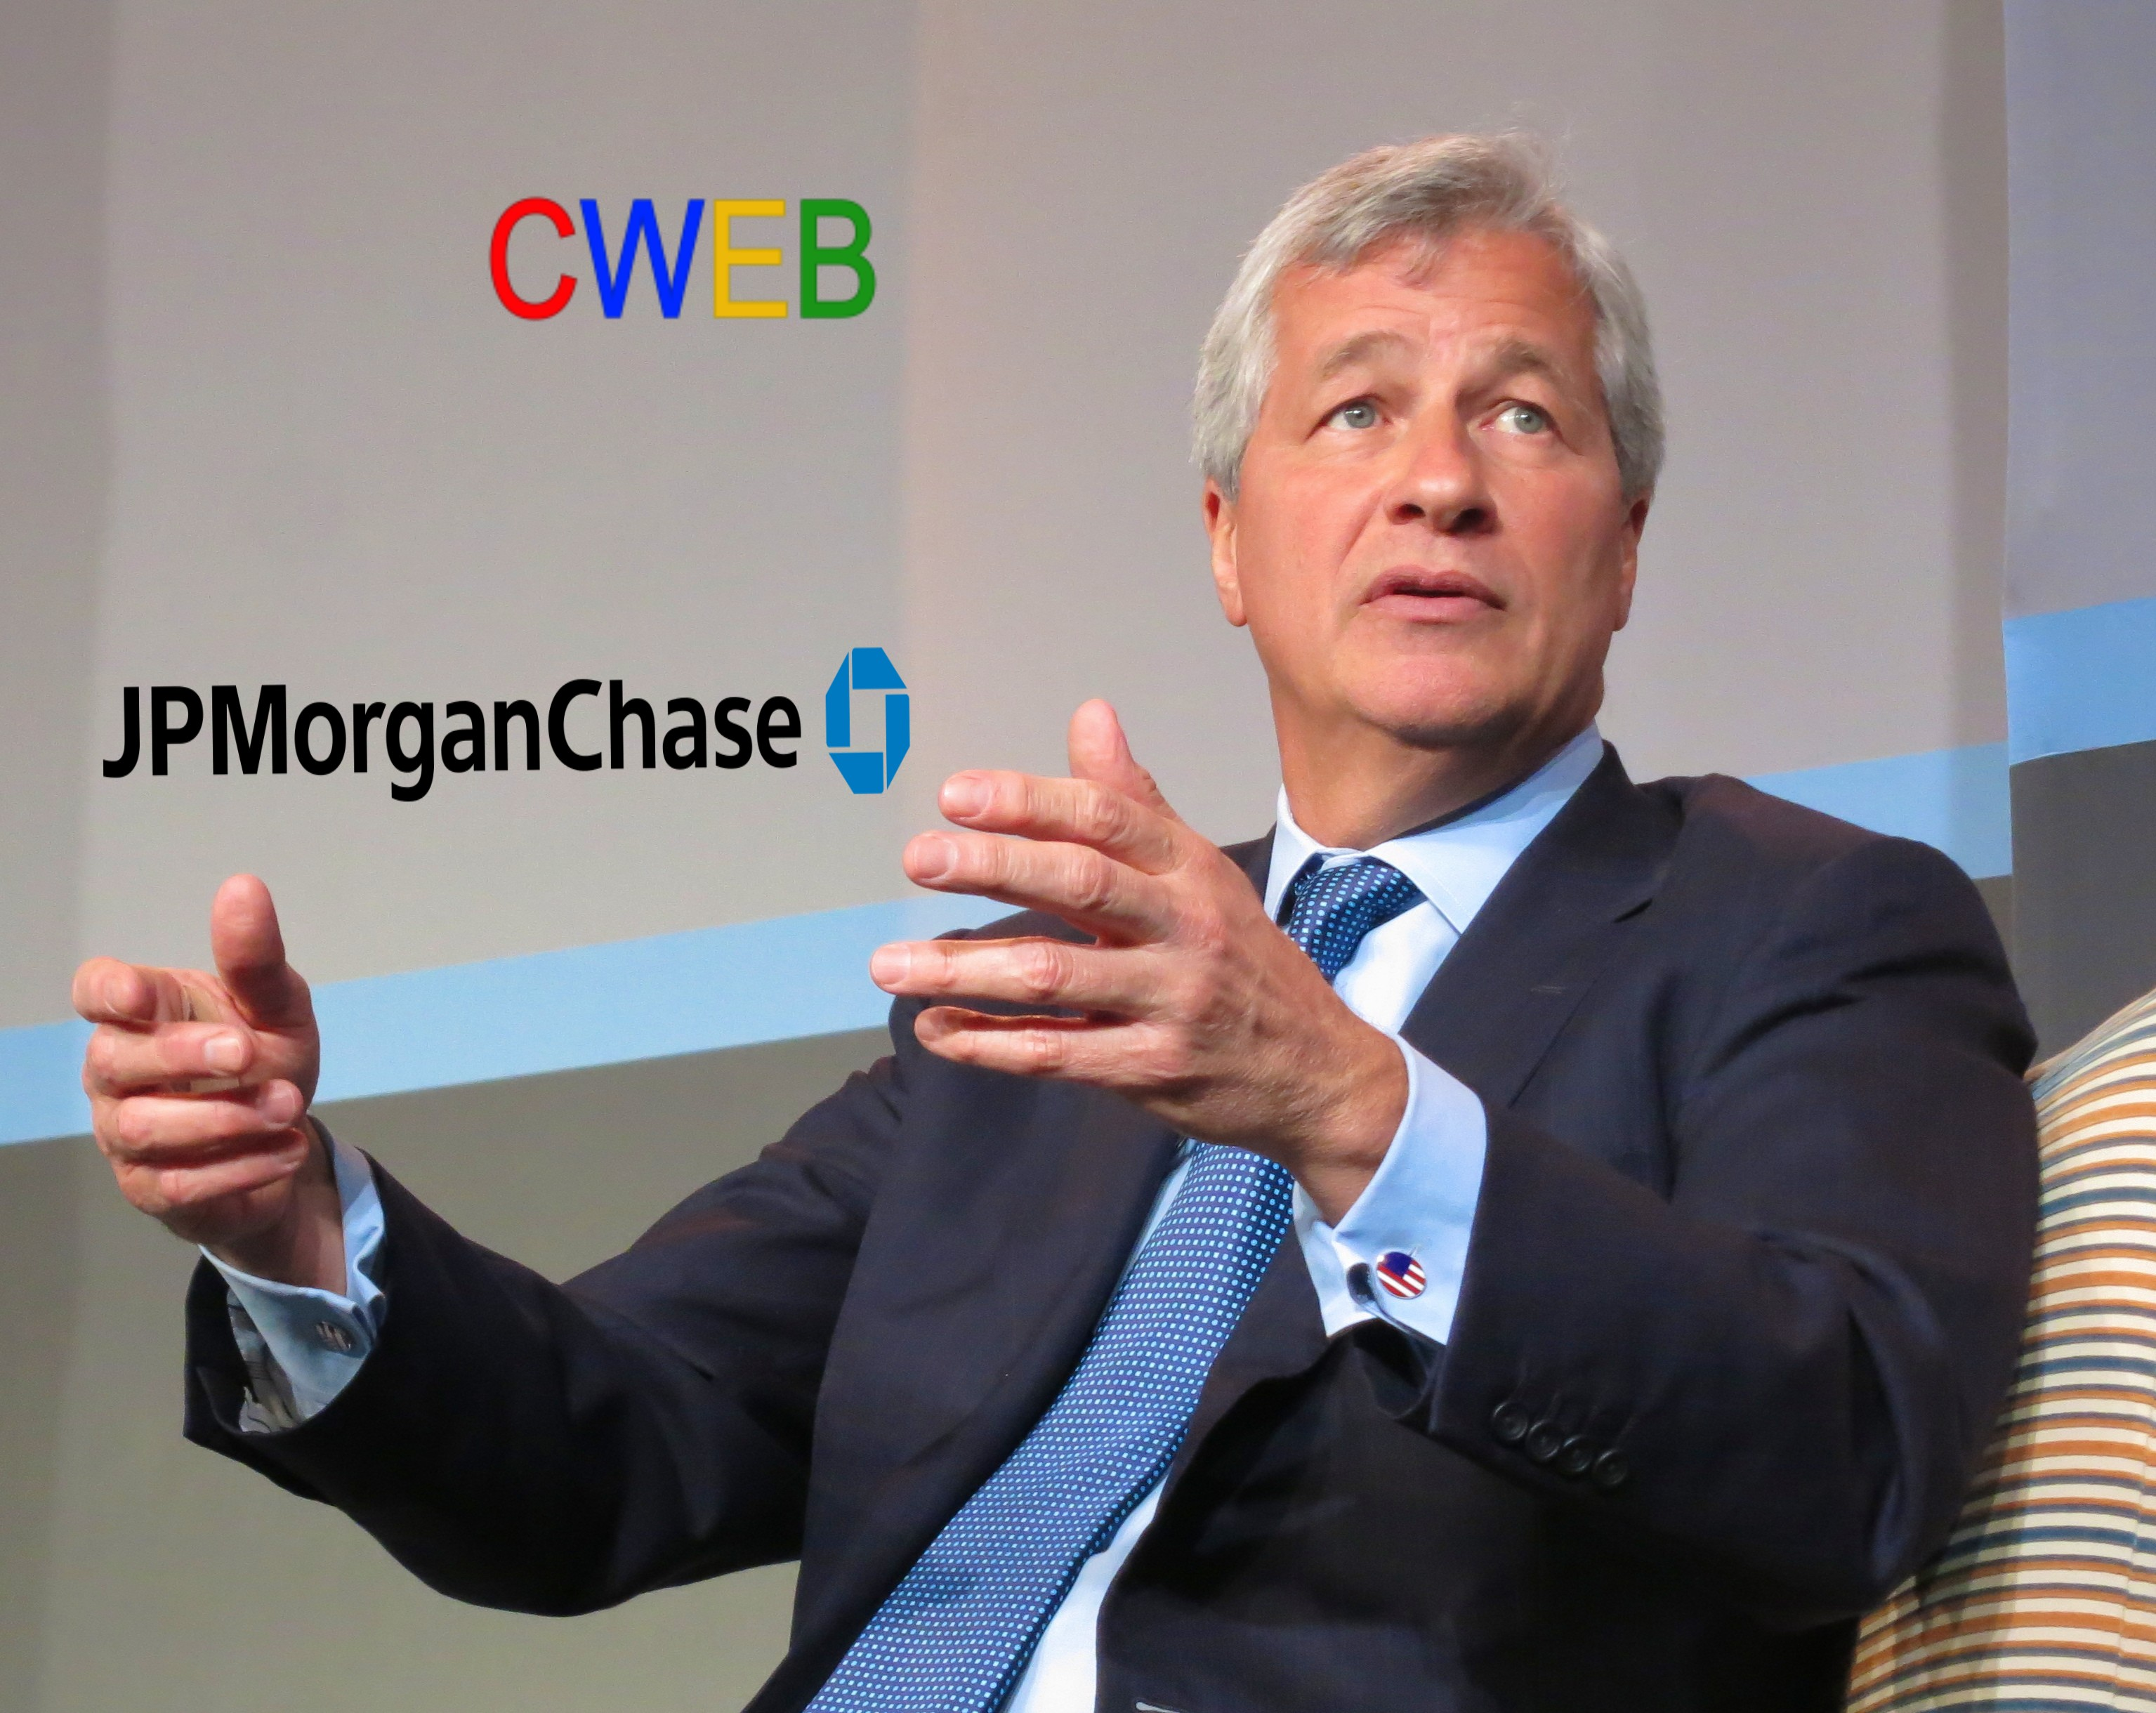 Jamie_Dimon,_CEO_of_JPMorgan_Chase